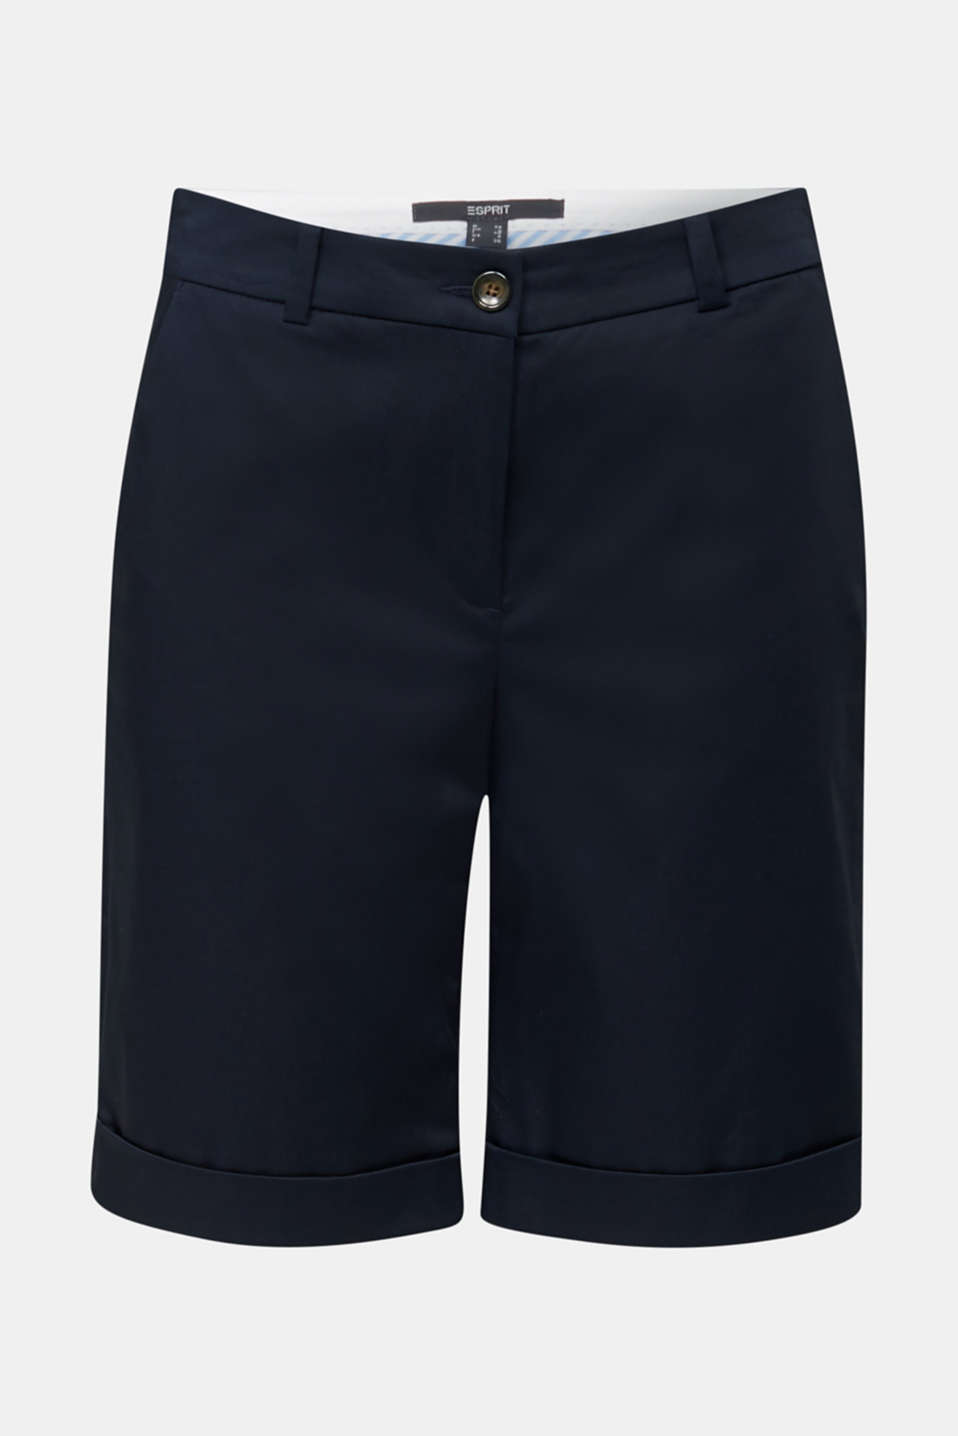 Stretchy satined Bermuda shorts, NAVY, detail image number 7